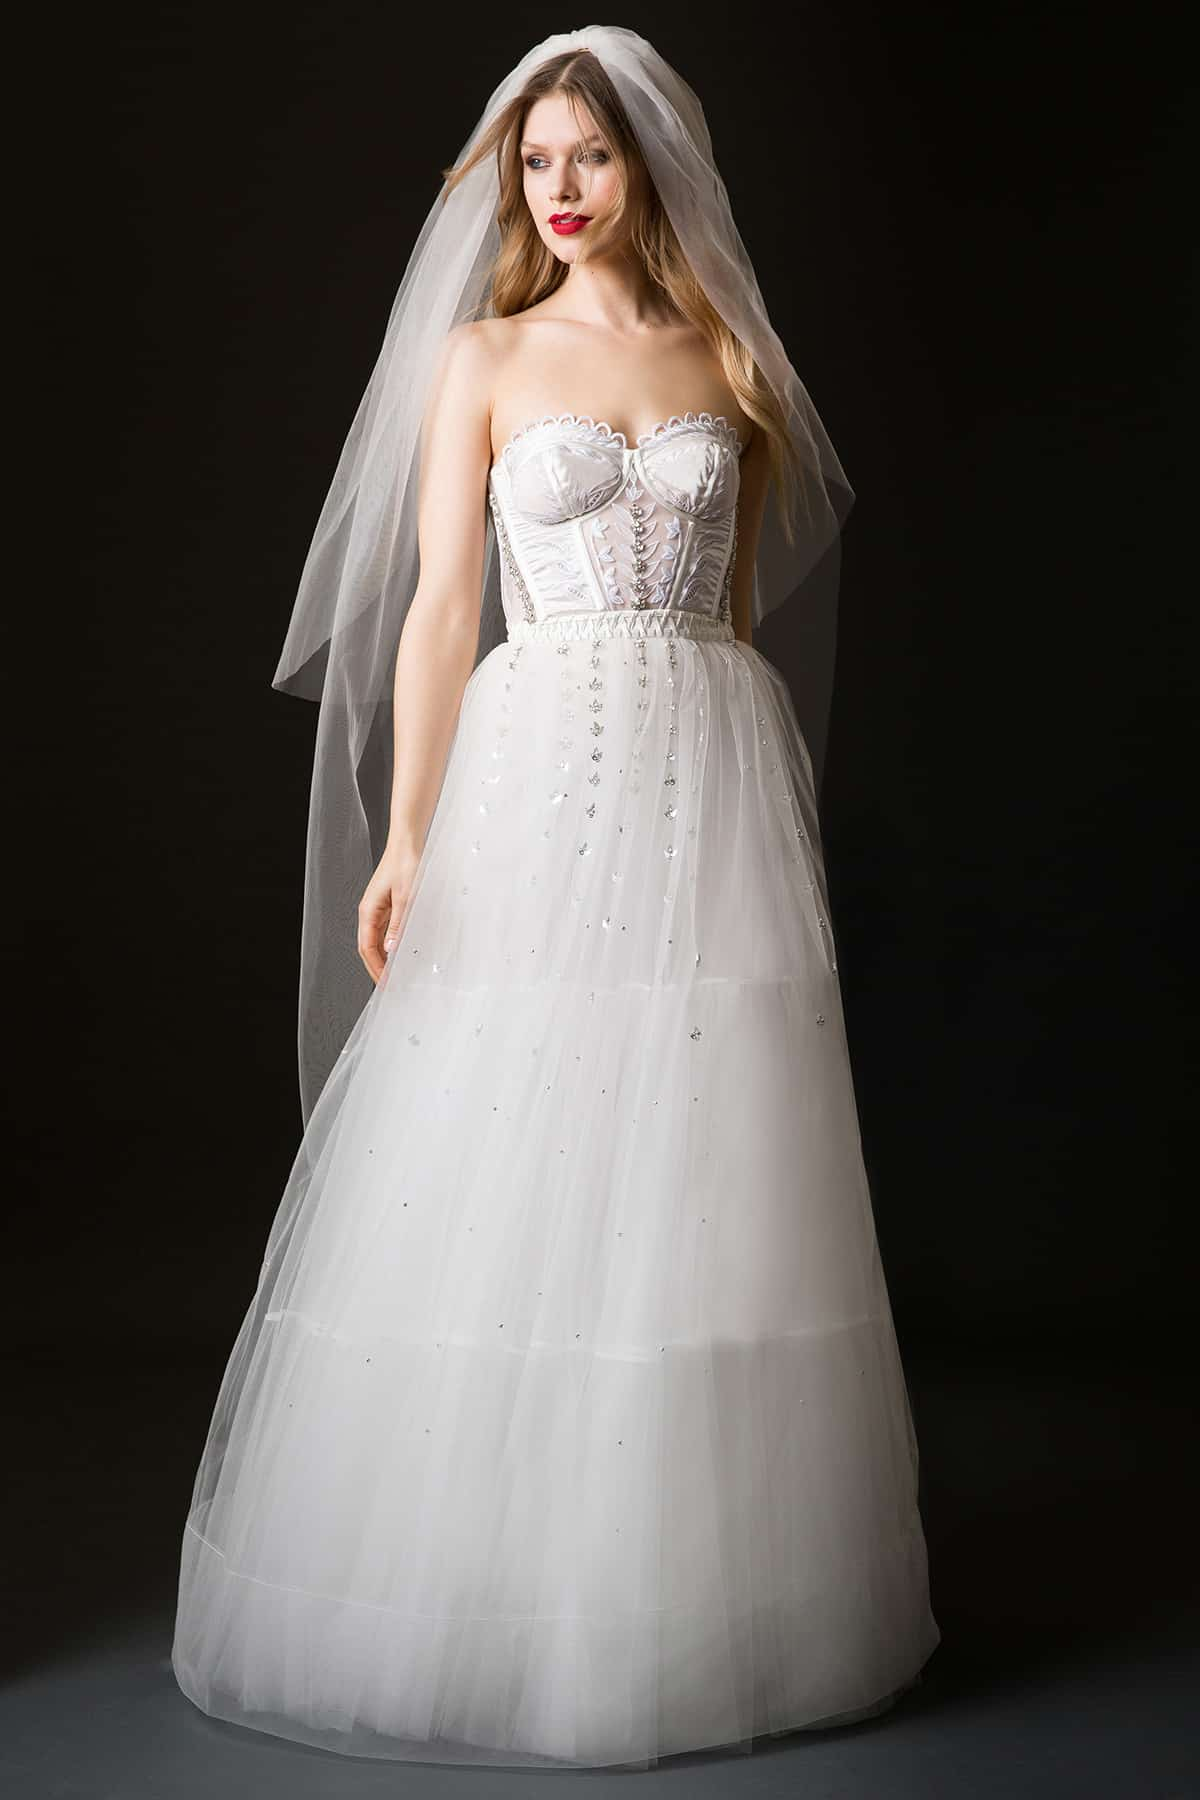 07-Lola-Dress-Temperley-Bridal